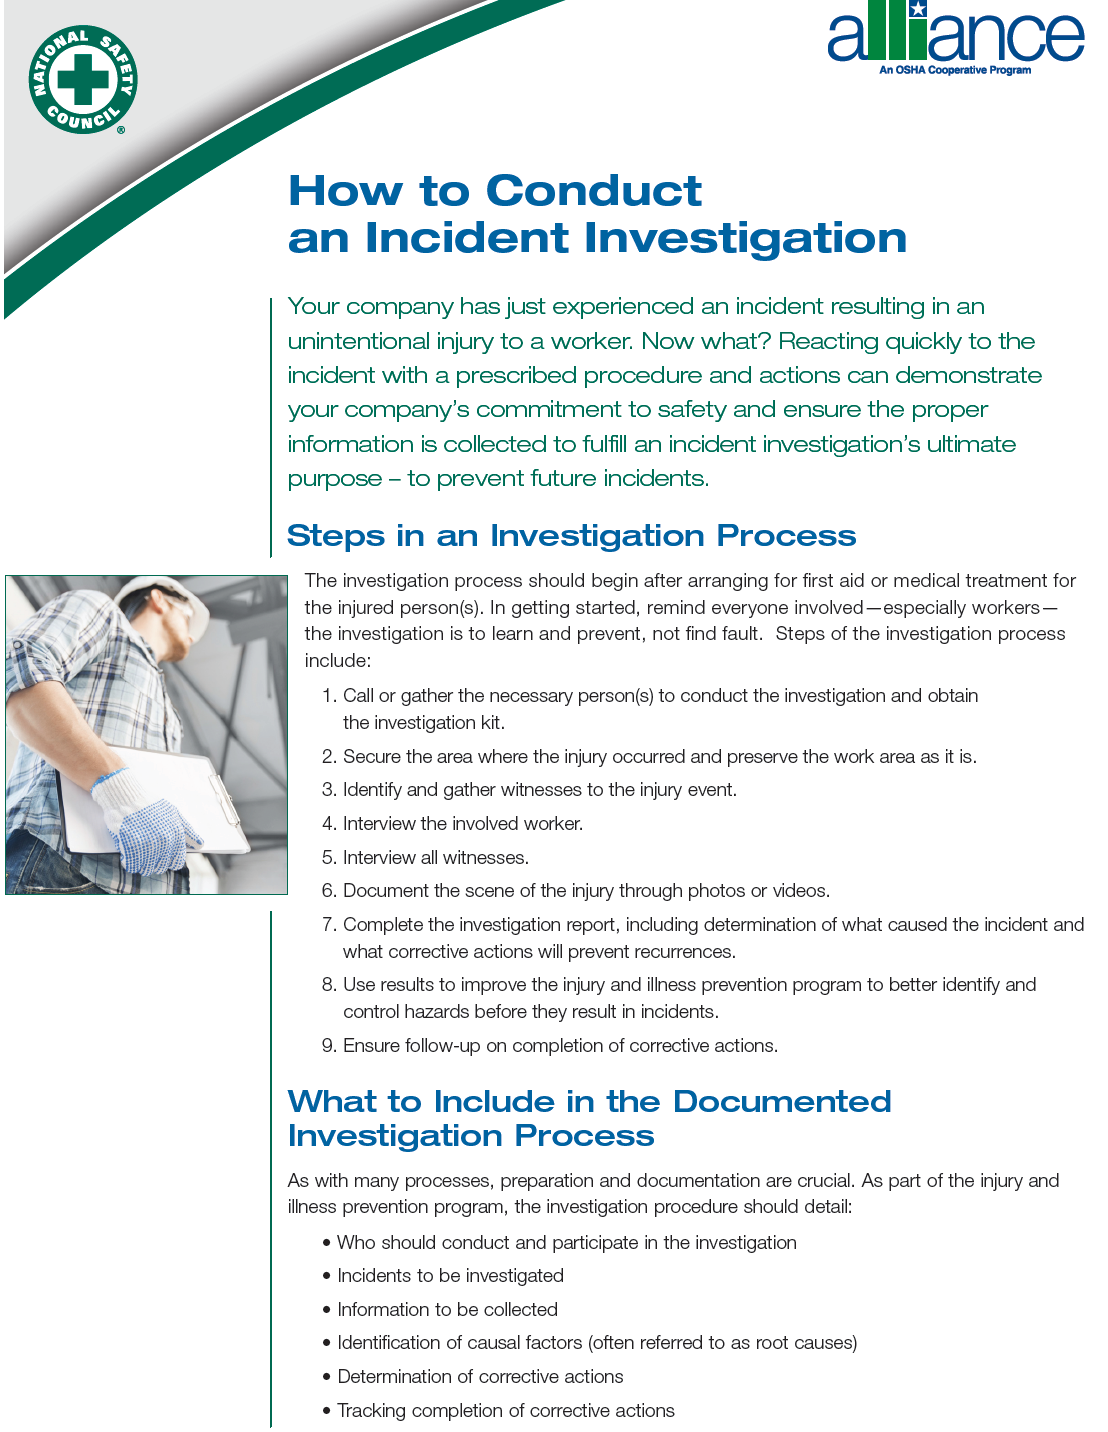 How to Conduct an Incident Investigation Your company has just experienced an incident resulting in an unintentional injury to a worker. Now what? Reacting quickly to the incident with a prescribed procedure and actions can demonstrate your company's commitment to safety and ensure the proper information is collected to fulfill an incident investigation's ultimate purpose – to prevent future incidents. Steps in an Investigation Process The investigation process should begin after arranging for first aid or medical treatment for the injured person(s). In getting started, remind everyone involved—especially workers—the investigation is to learn and prevent, not find fault. Steps of the investigation process include: 1. Call or gather the necessary person(s) to conduct the investigation and obtain the investigation kit. 2. Secure the area where the injury occurred and preserve the work area as it is. 3. Identify and gather witnesses to the injury event. 4. Interview the involved worker. 5. Interview all witnesses. 6. Document the scene of the injury through photos or videos. 7. Complete the investigation report, including determination of what caused the incident and what corrective actions will prevent recurrences.8. Use results to improve the injury and illness prevention program to better identify and control hazards before they result in incidents. 9. Ensure follow-up on completion of corrective actions. What to Include in the Documented Investigation Process As with many processes, preparation and documentation are crucial. As part of the injury and illness prevention program, the investigation procedure should detail: • Who should conduct and participate in the investigation • Incidents to be investigated • Information to be collected • Identification of causal factors (often referred to as root causes) • Determination of corrective actions • Tracking completion of corrective actions © 2014 National Safety Council